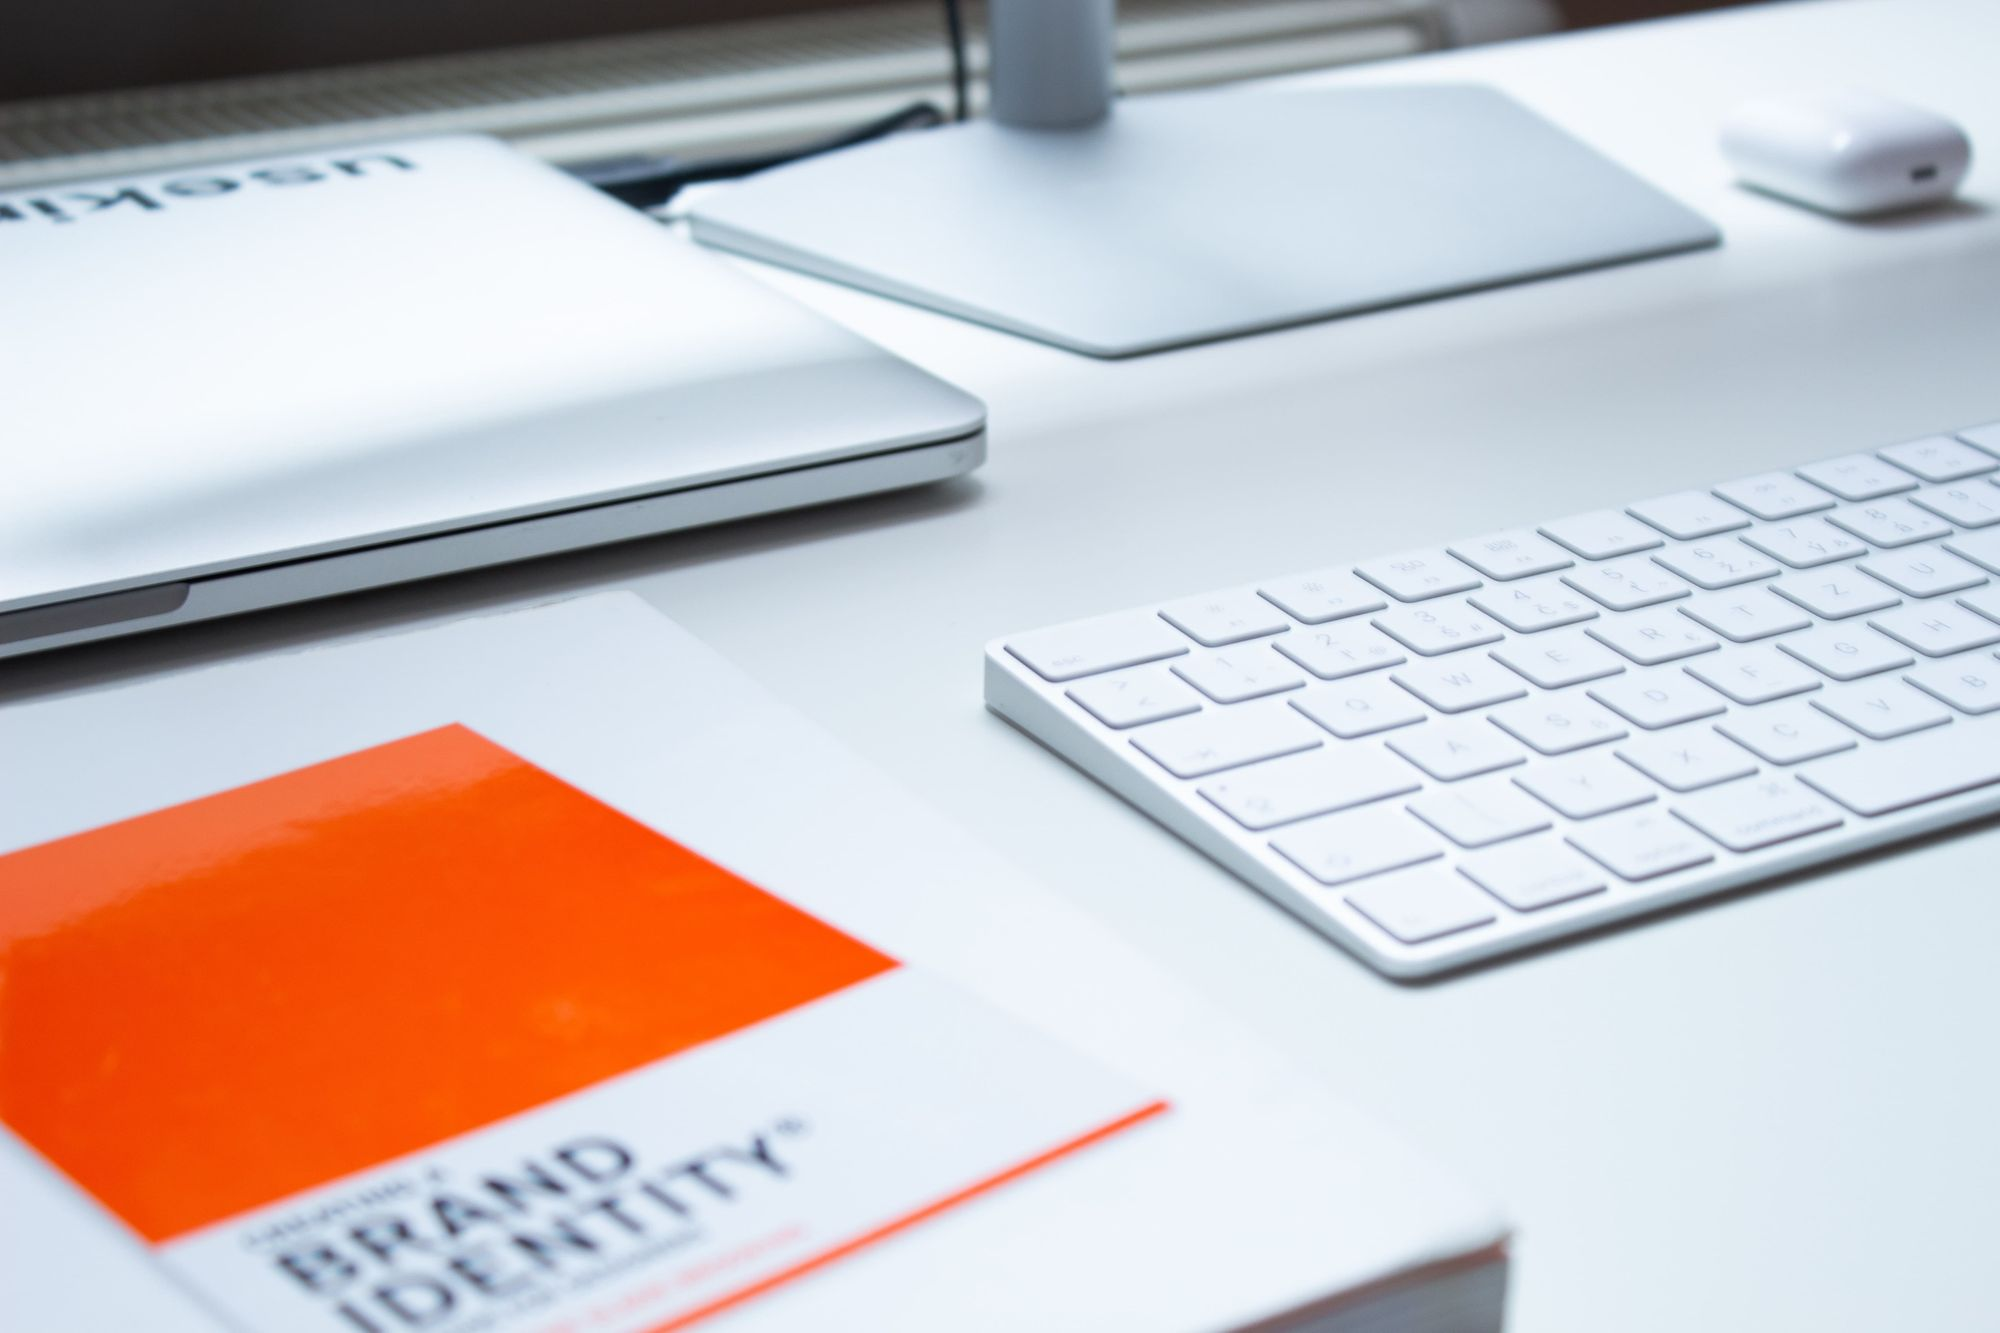 book-on-brand-identity-with-macbook-on-table